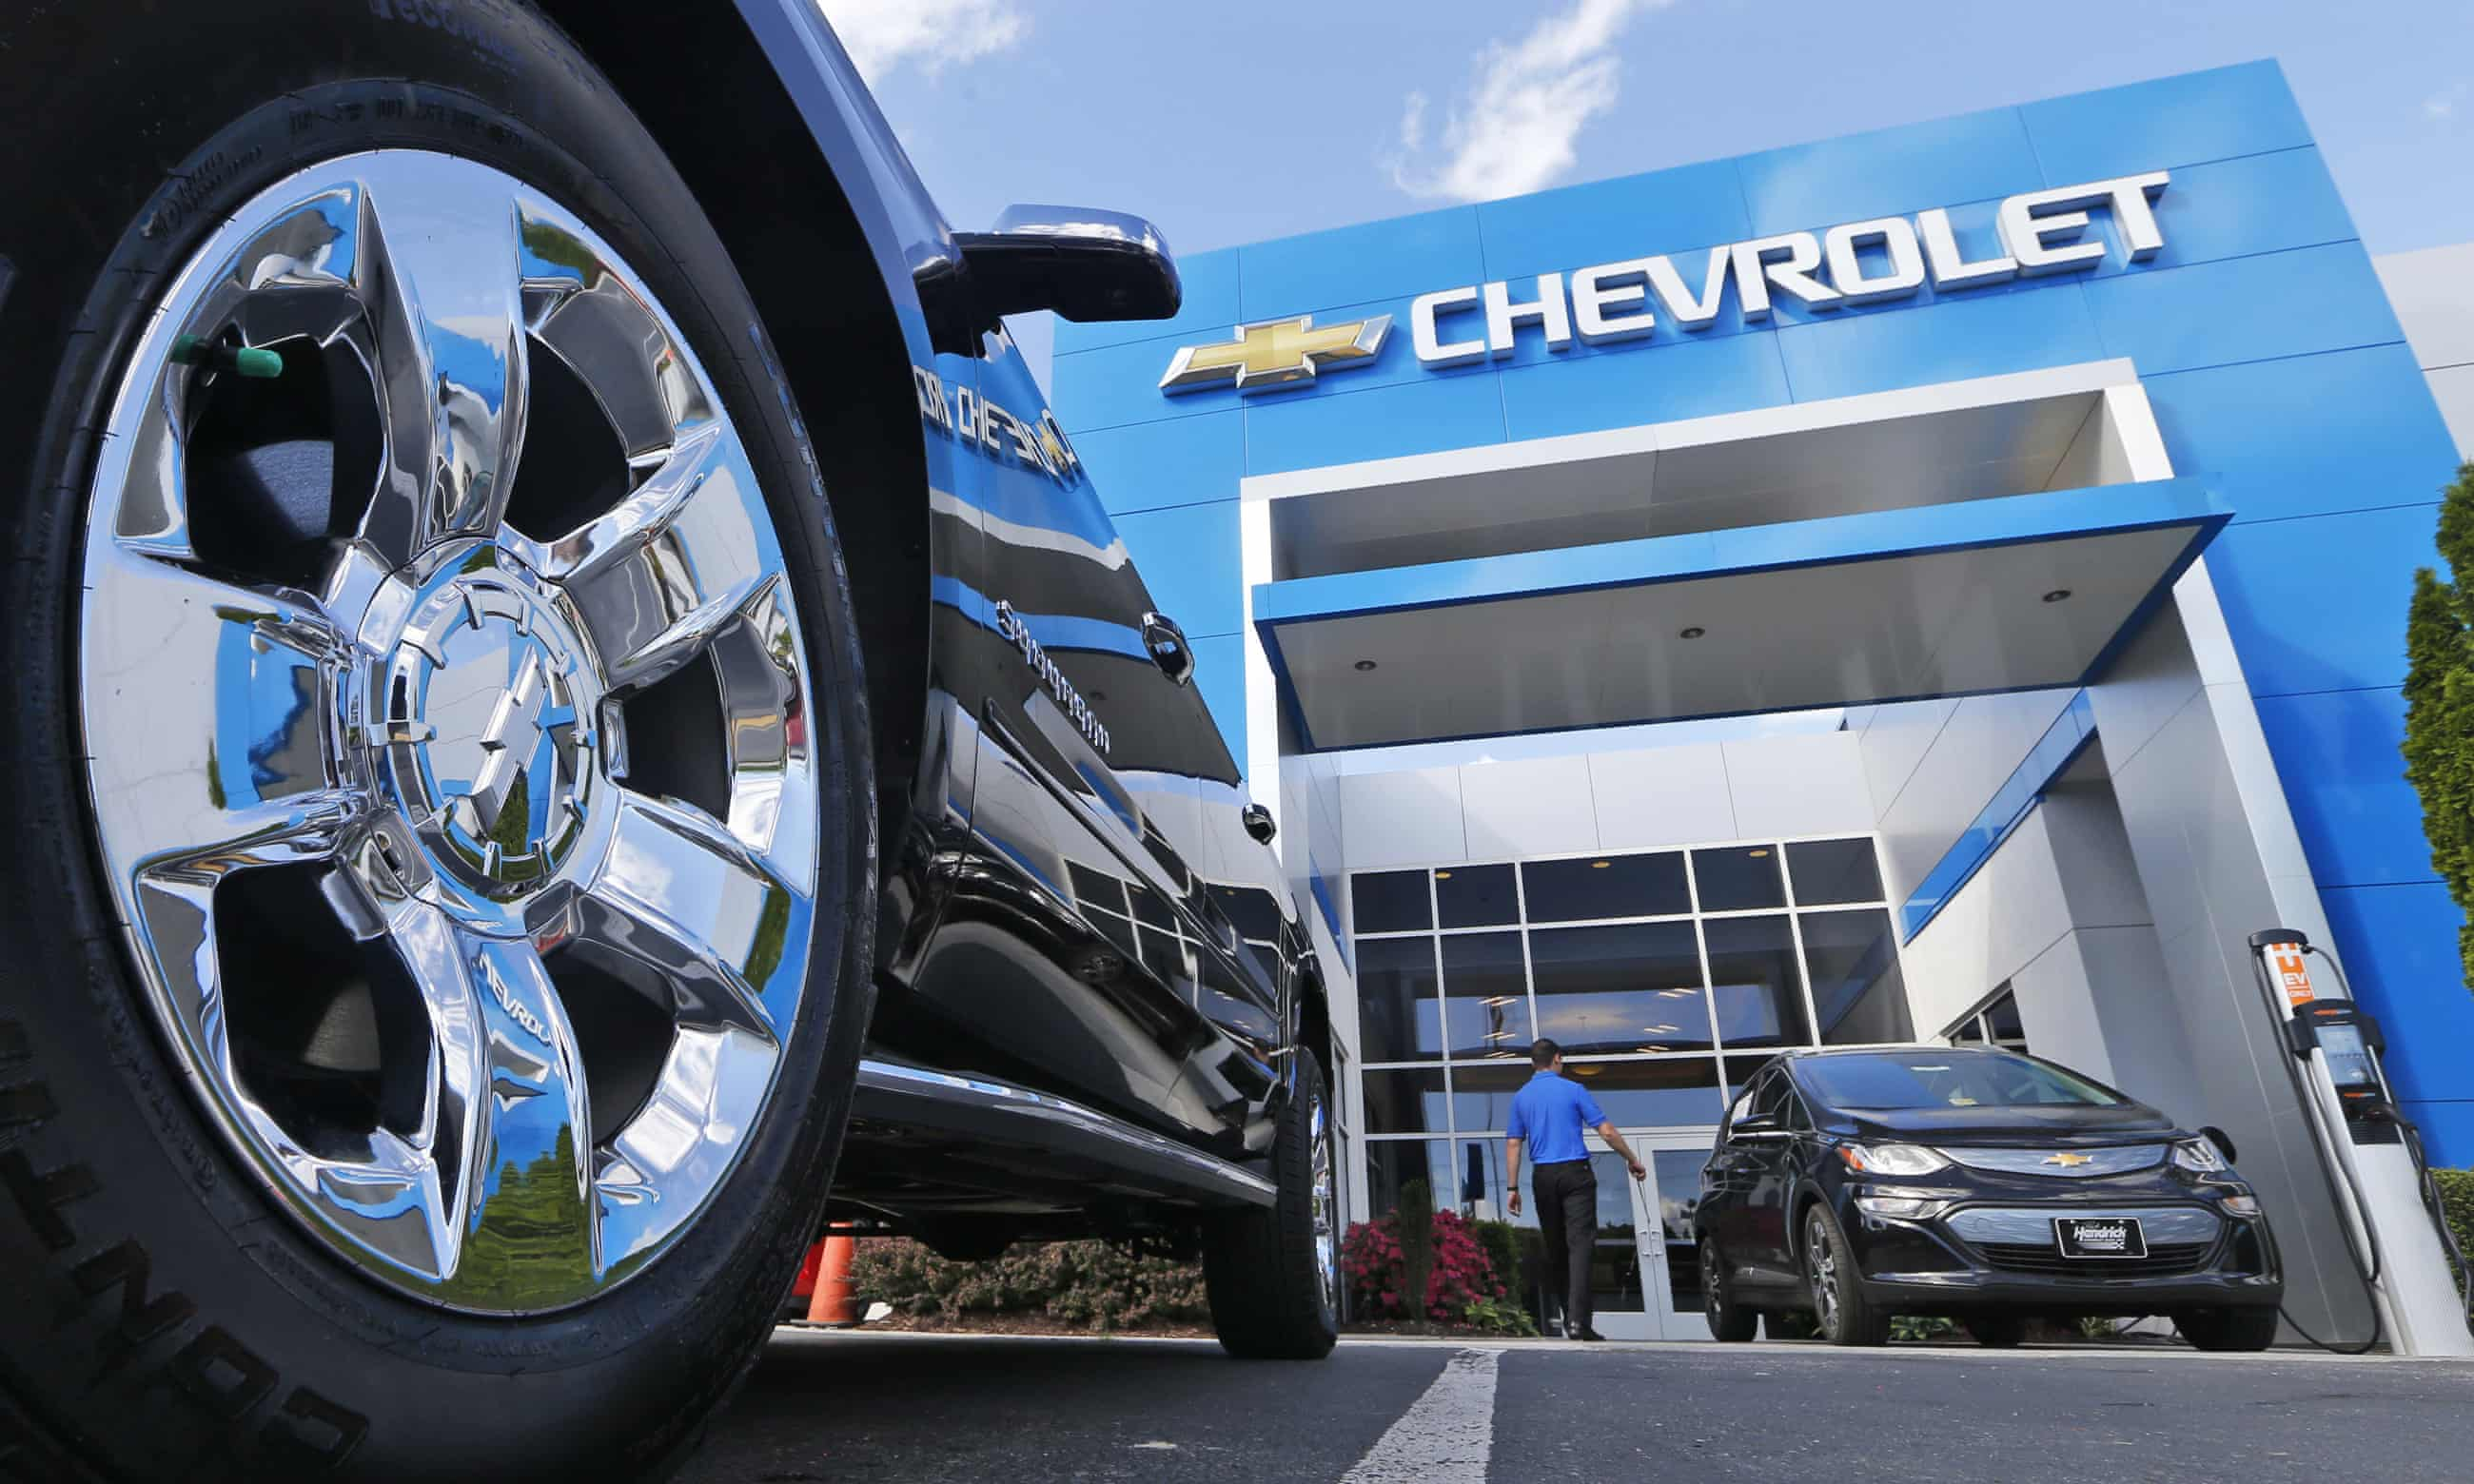 Stricken carmakers stall at the crossroads of a radical future